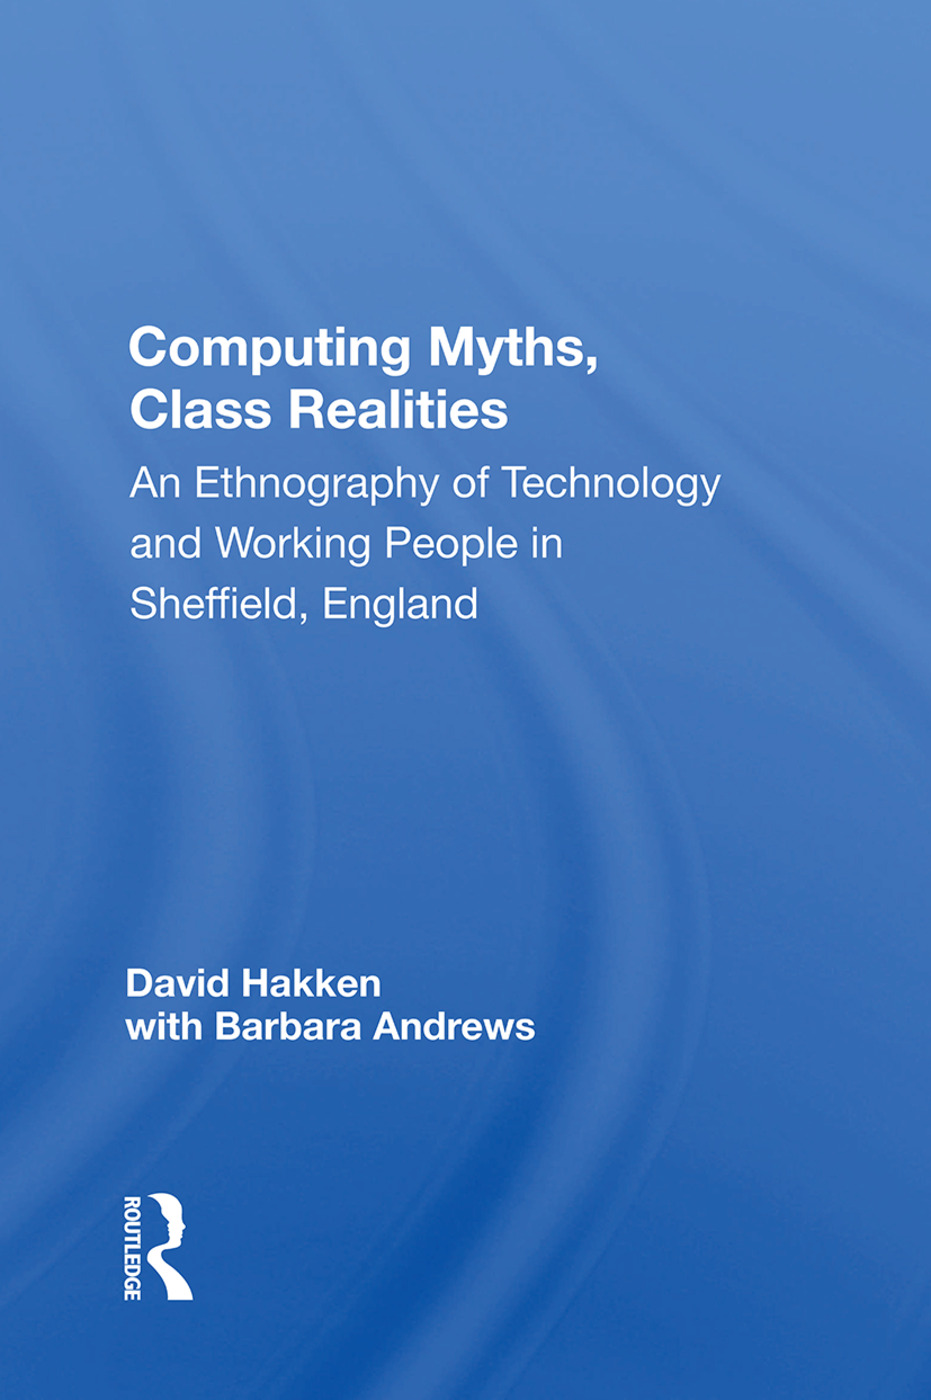 Computing Myths, Class Realities: An Ethnography of Technology and Working People in Sheffield, England book cover